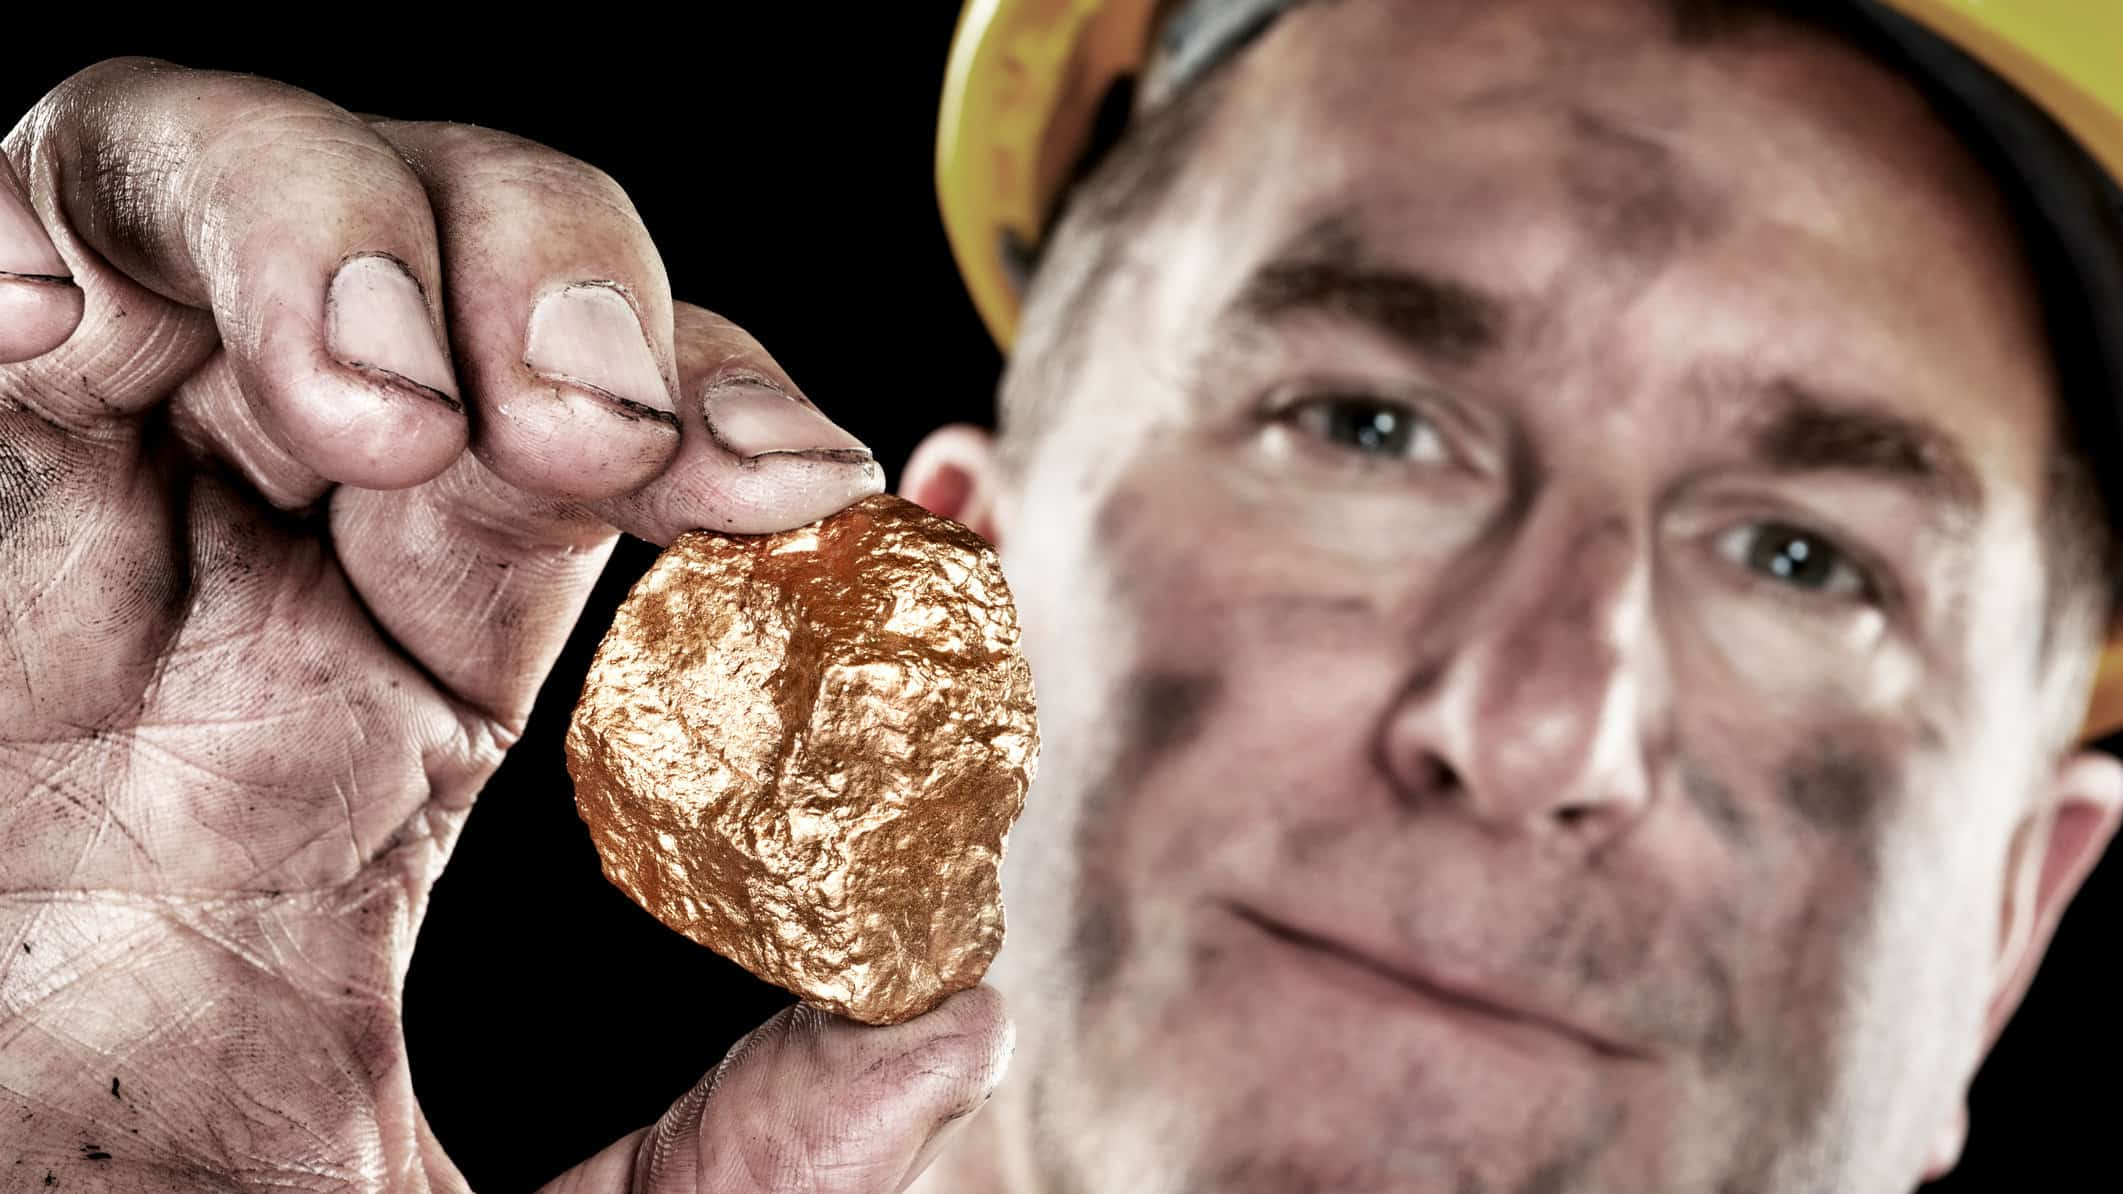 miner holding gold nugget